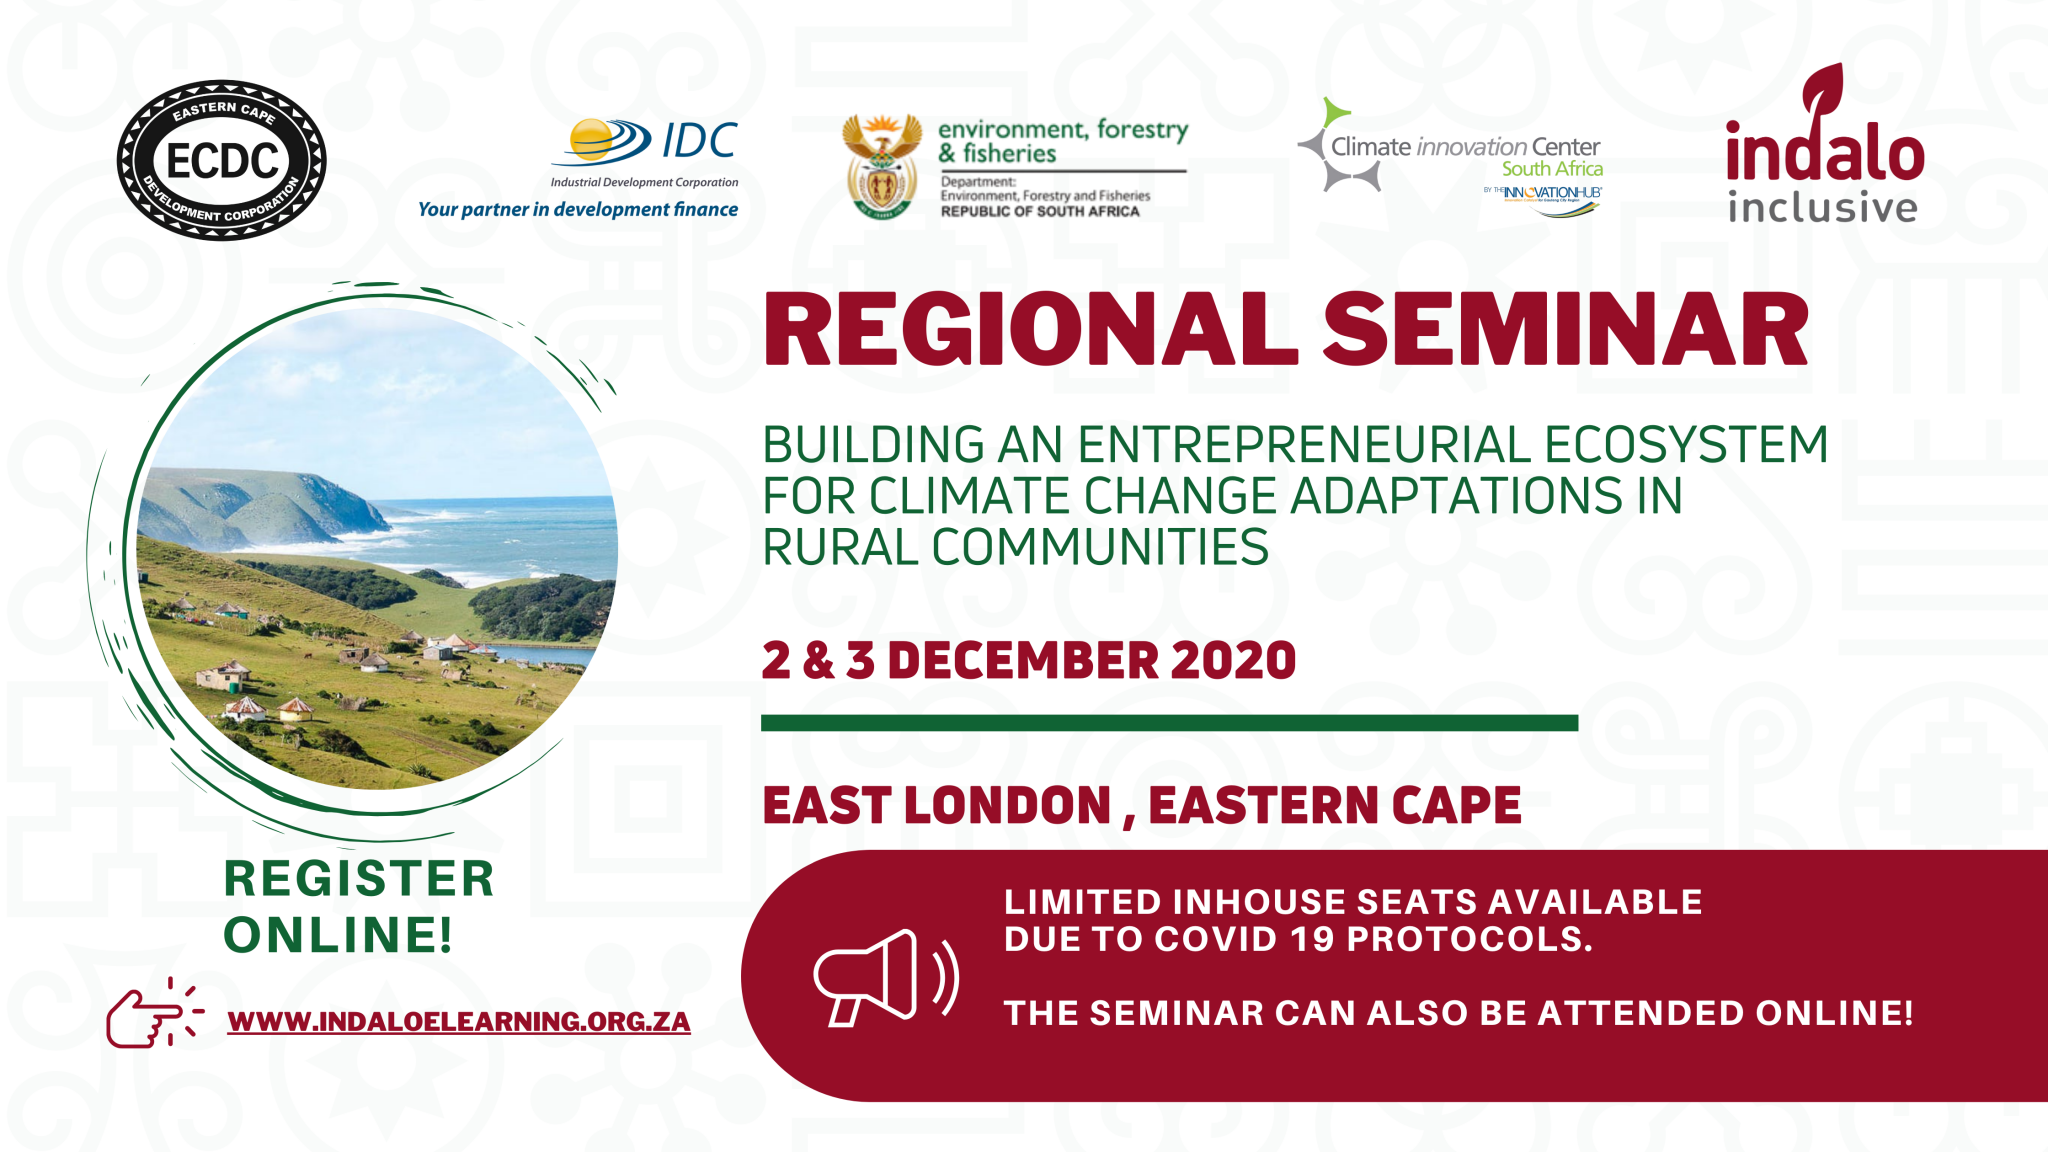 Regional Seminar - Building an Entrepreneural Ecosystem for Climate Change Adaptations in Rural Communities - Online Banner